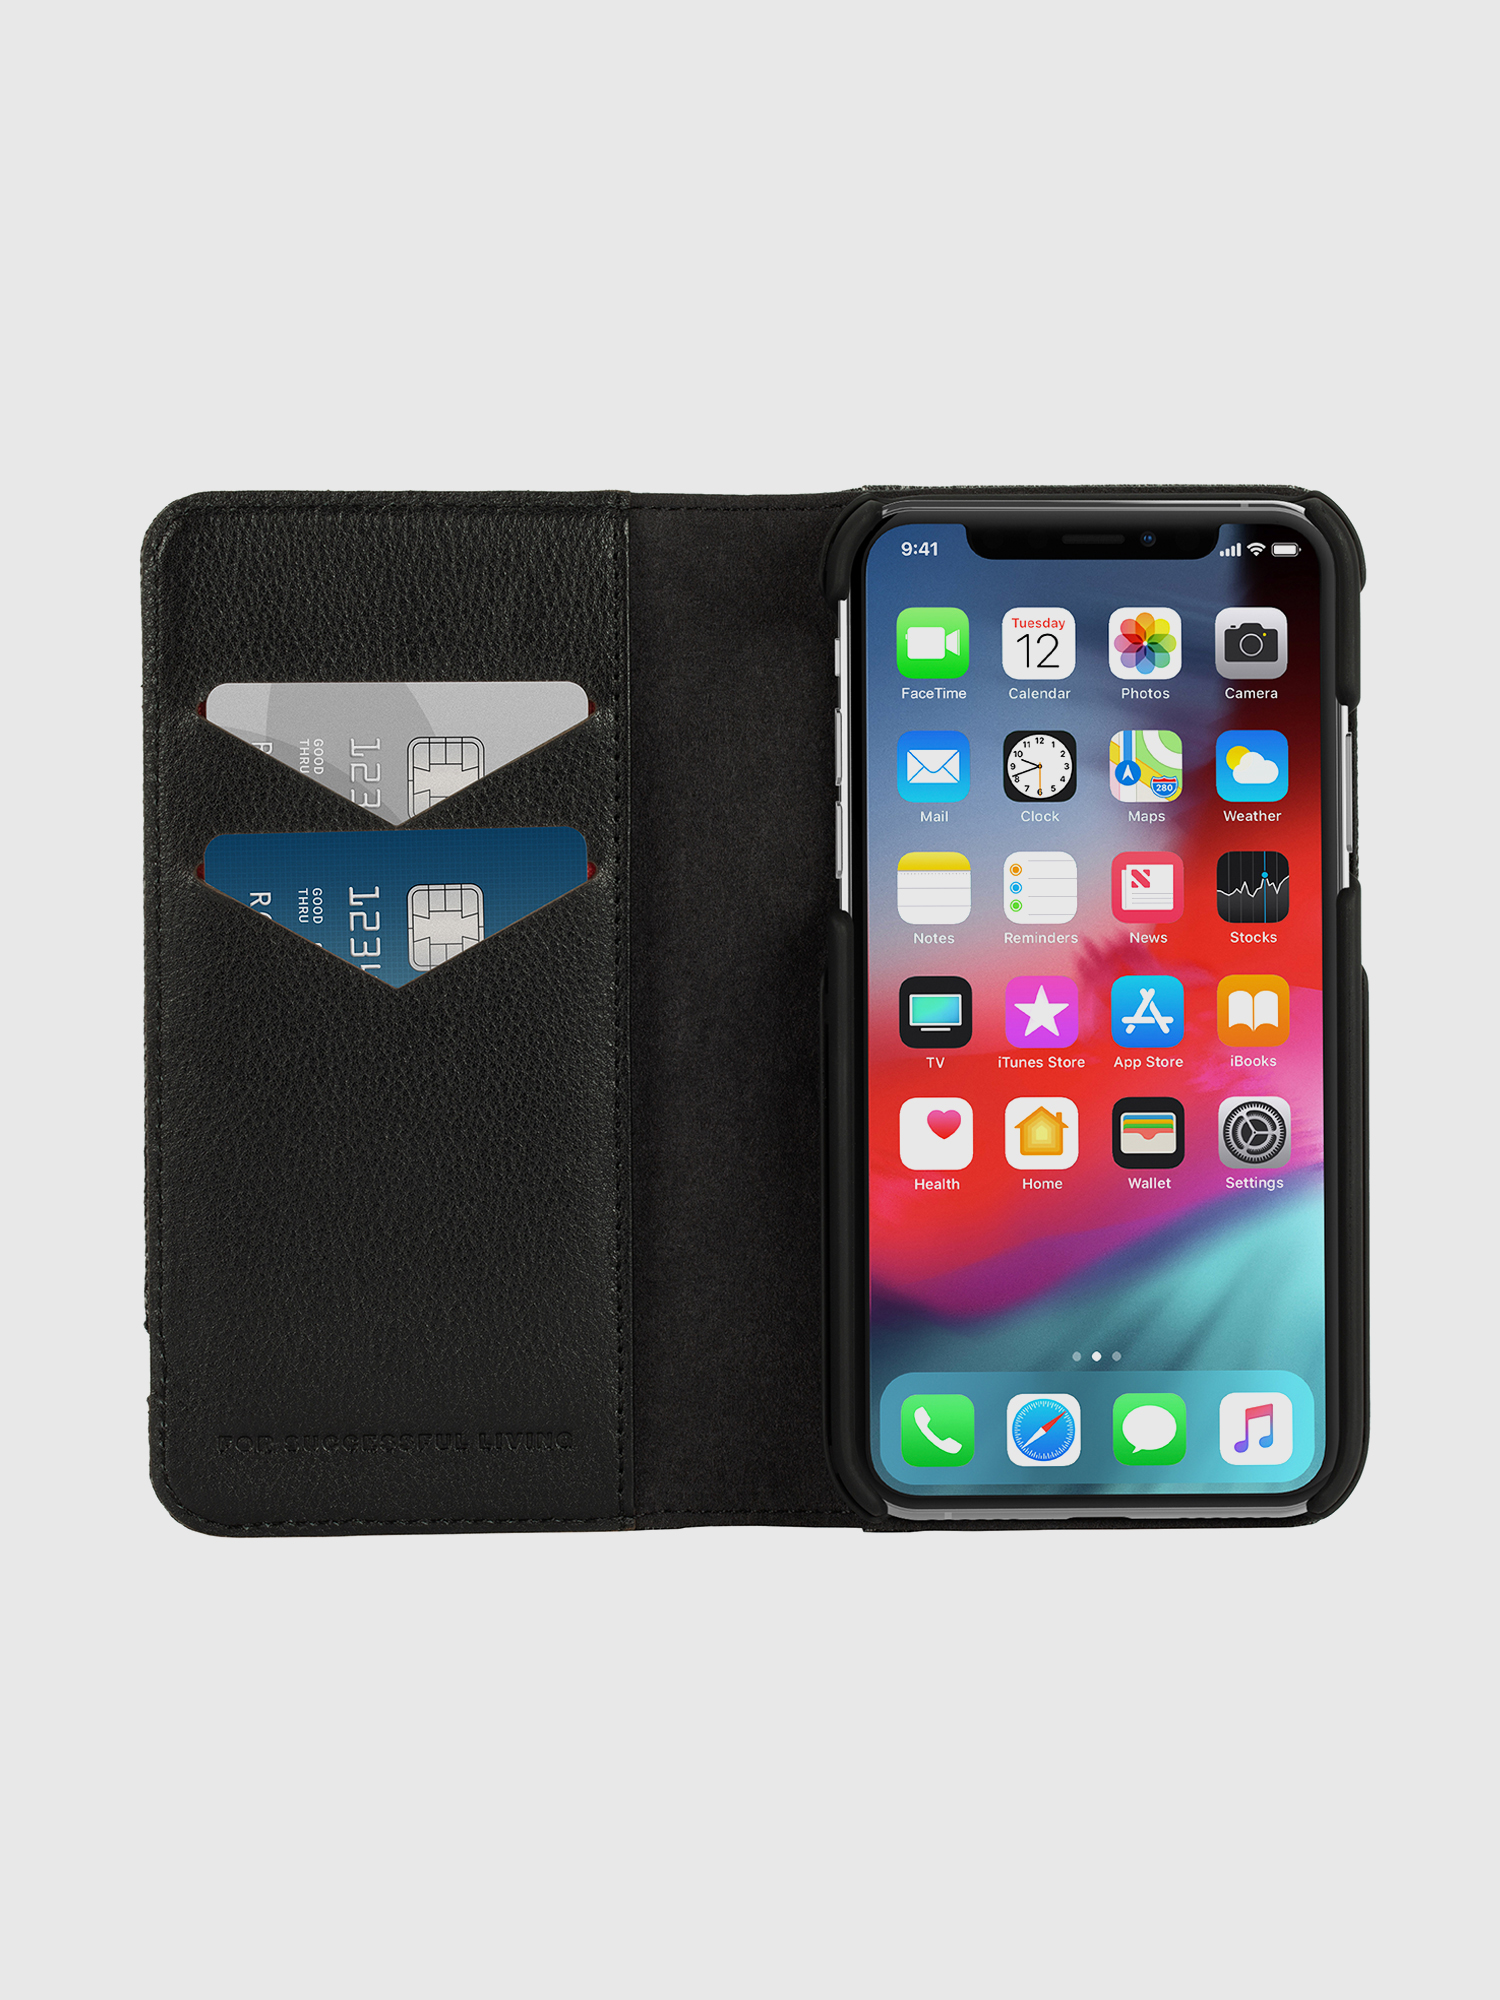 Diesel - DIESEL 2-IN-1 FOLIO CASE FOR IPHONE XS & IPHONE X,  - Flip covers - Image 7